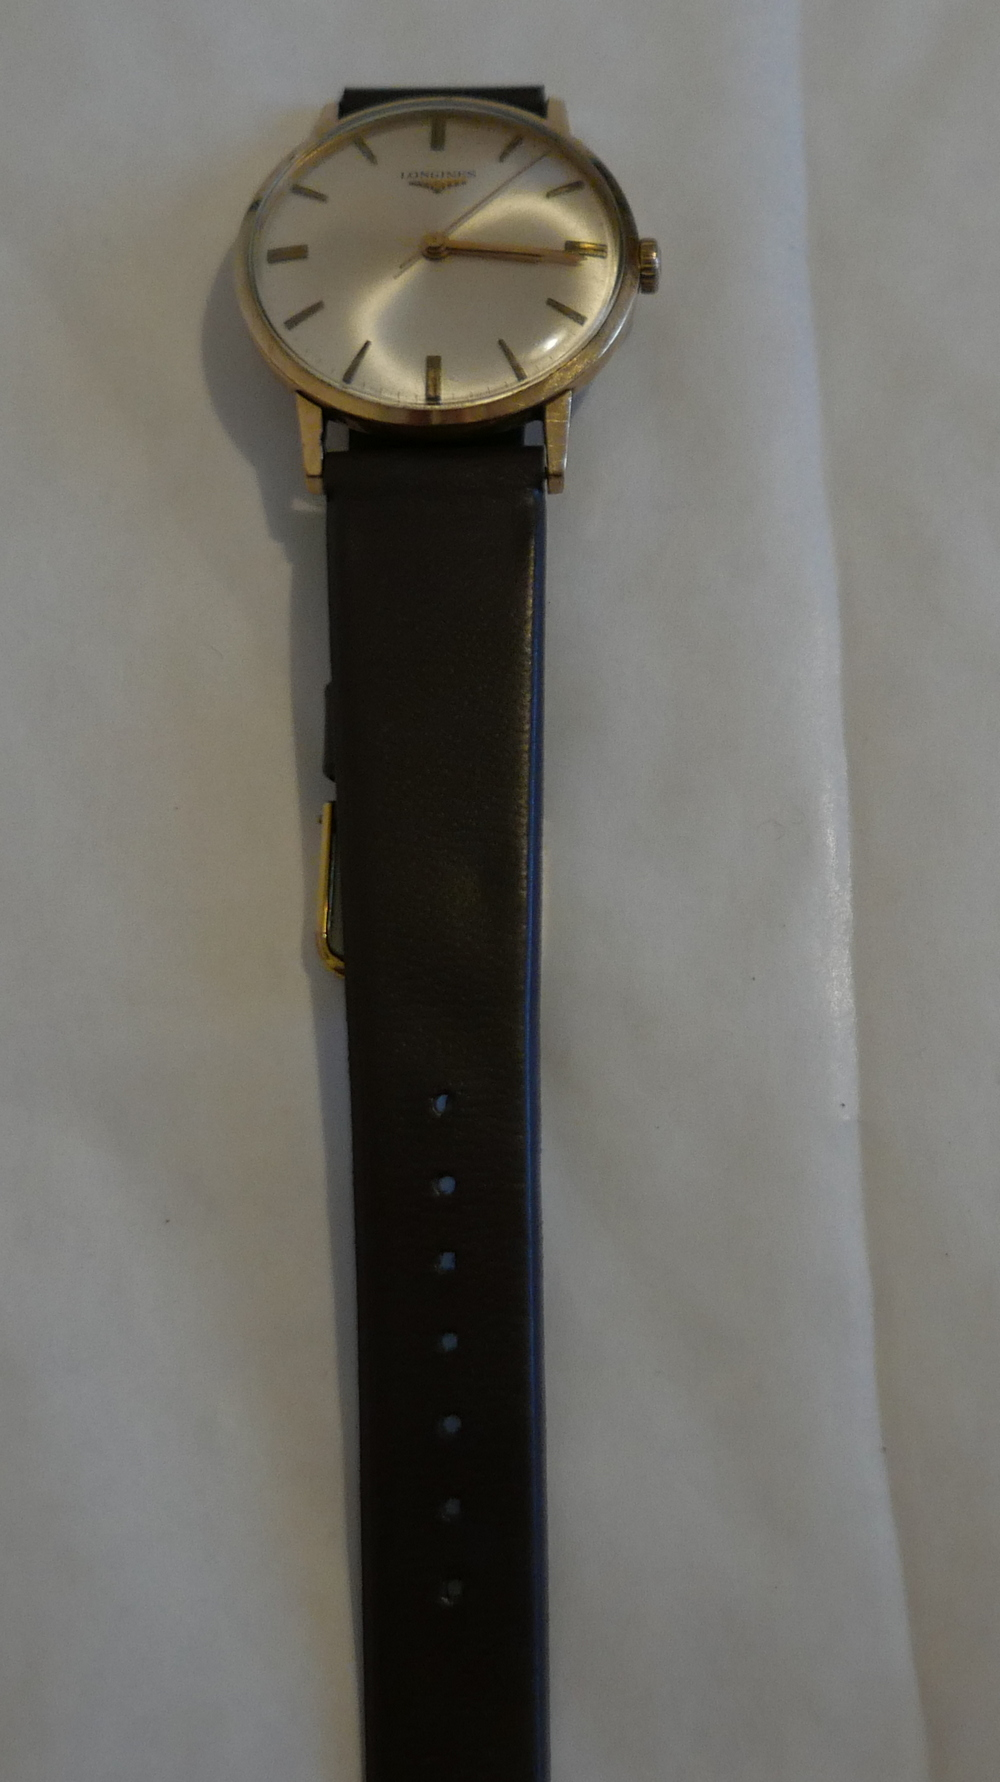 Lot 47 - Vintage 9 karat Gold Gents Longines Watch in an working order.